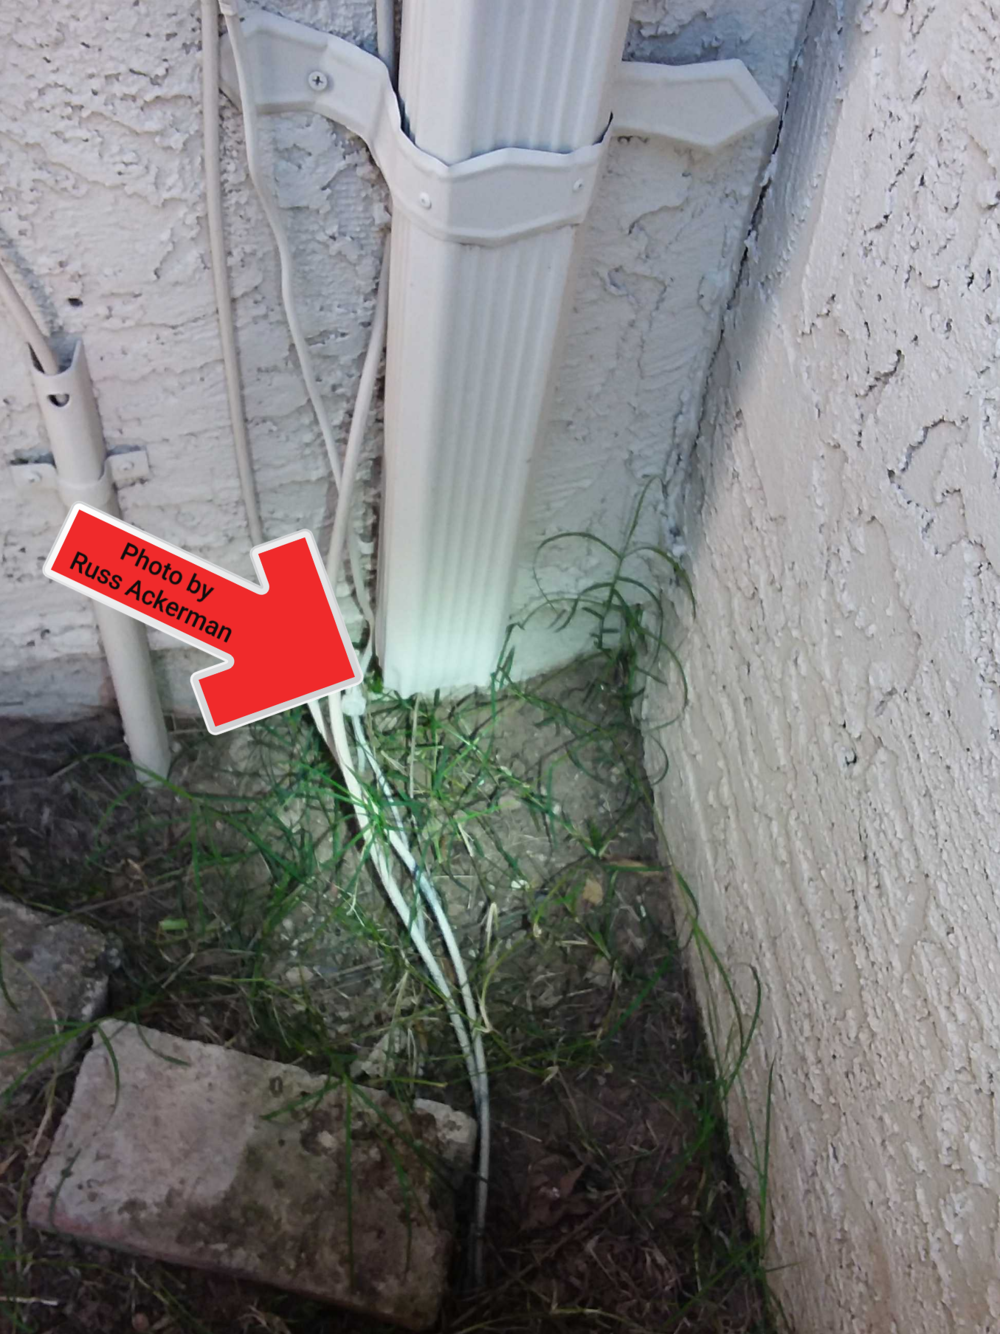 Downspout extensions should terminate at least 6' away from the foundation to reduce the chance of settling issues in the future.